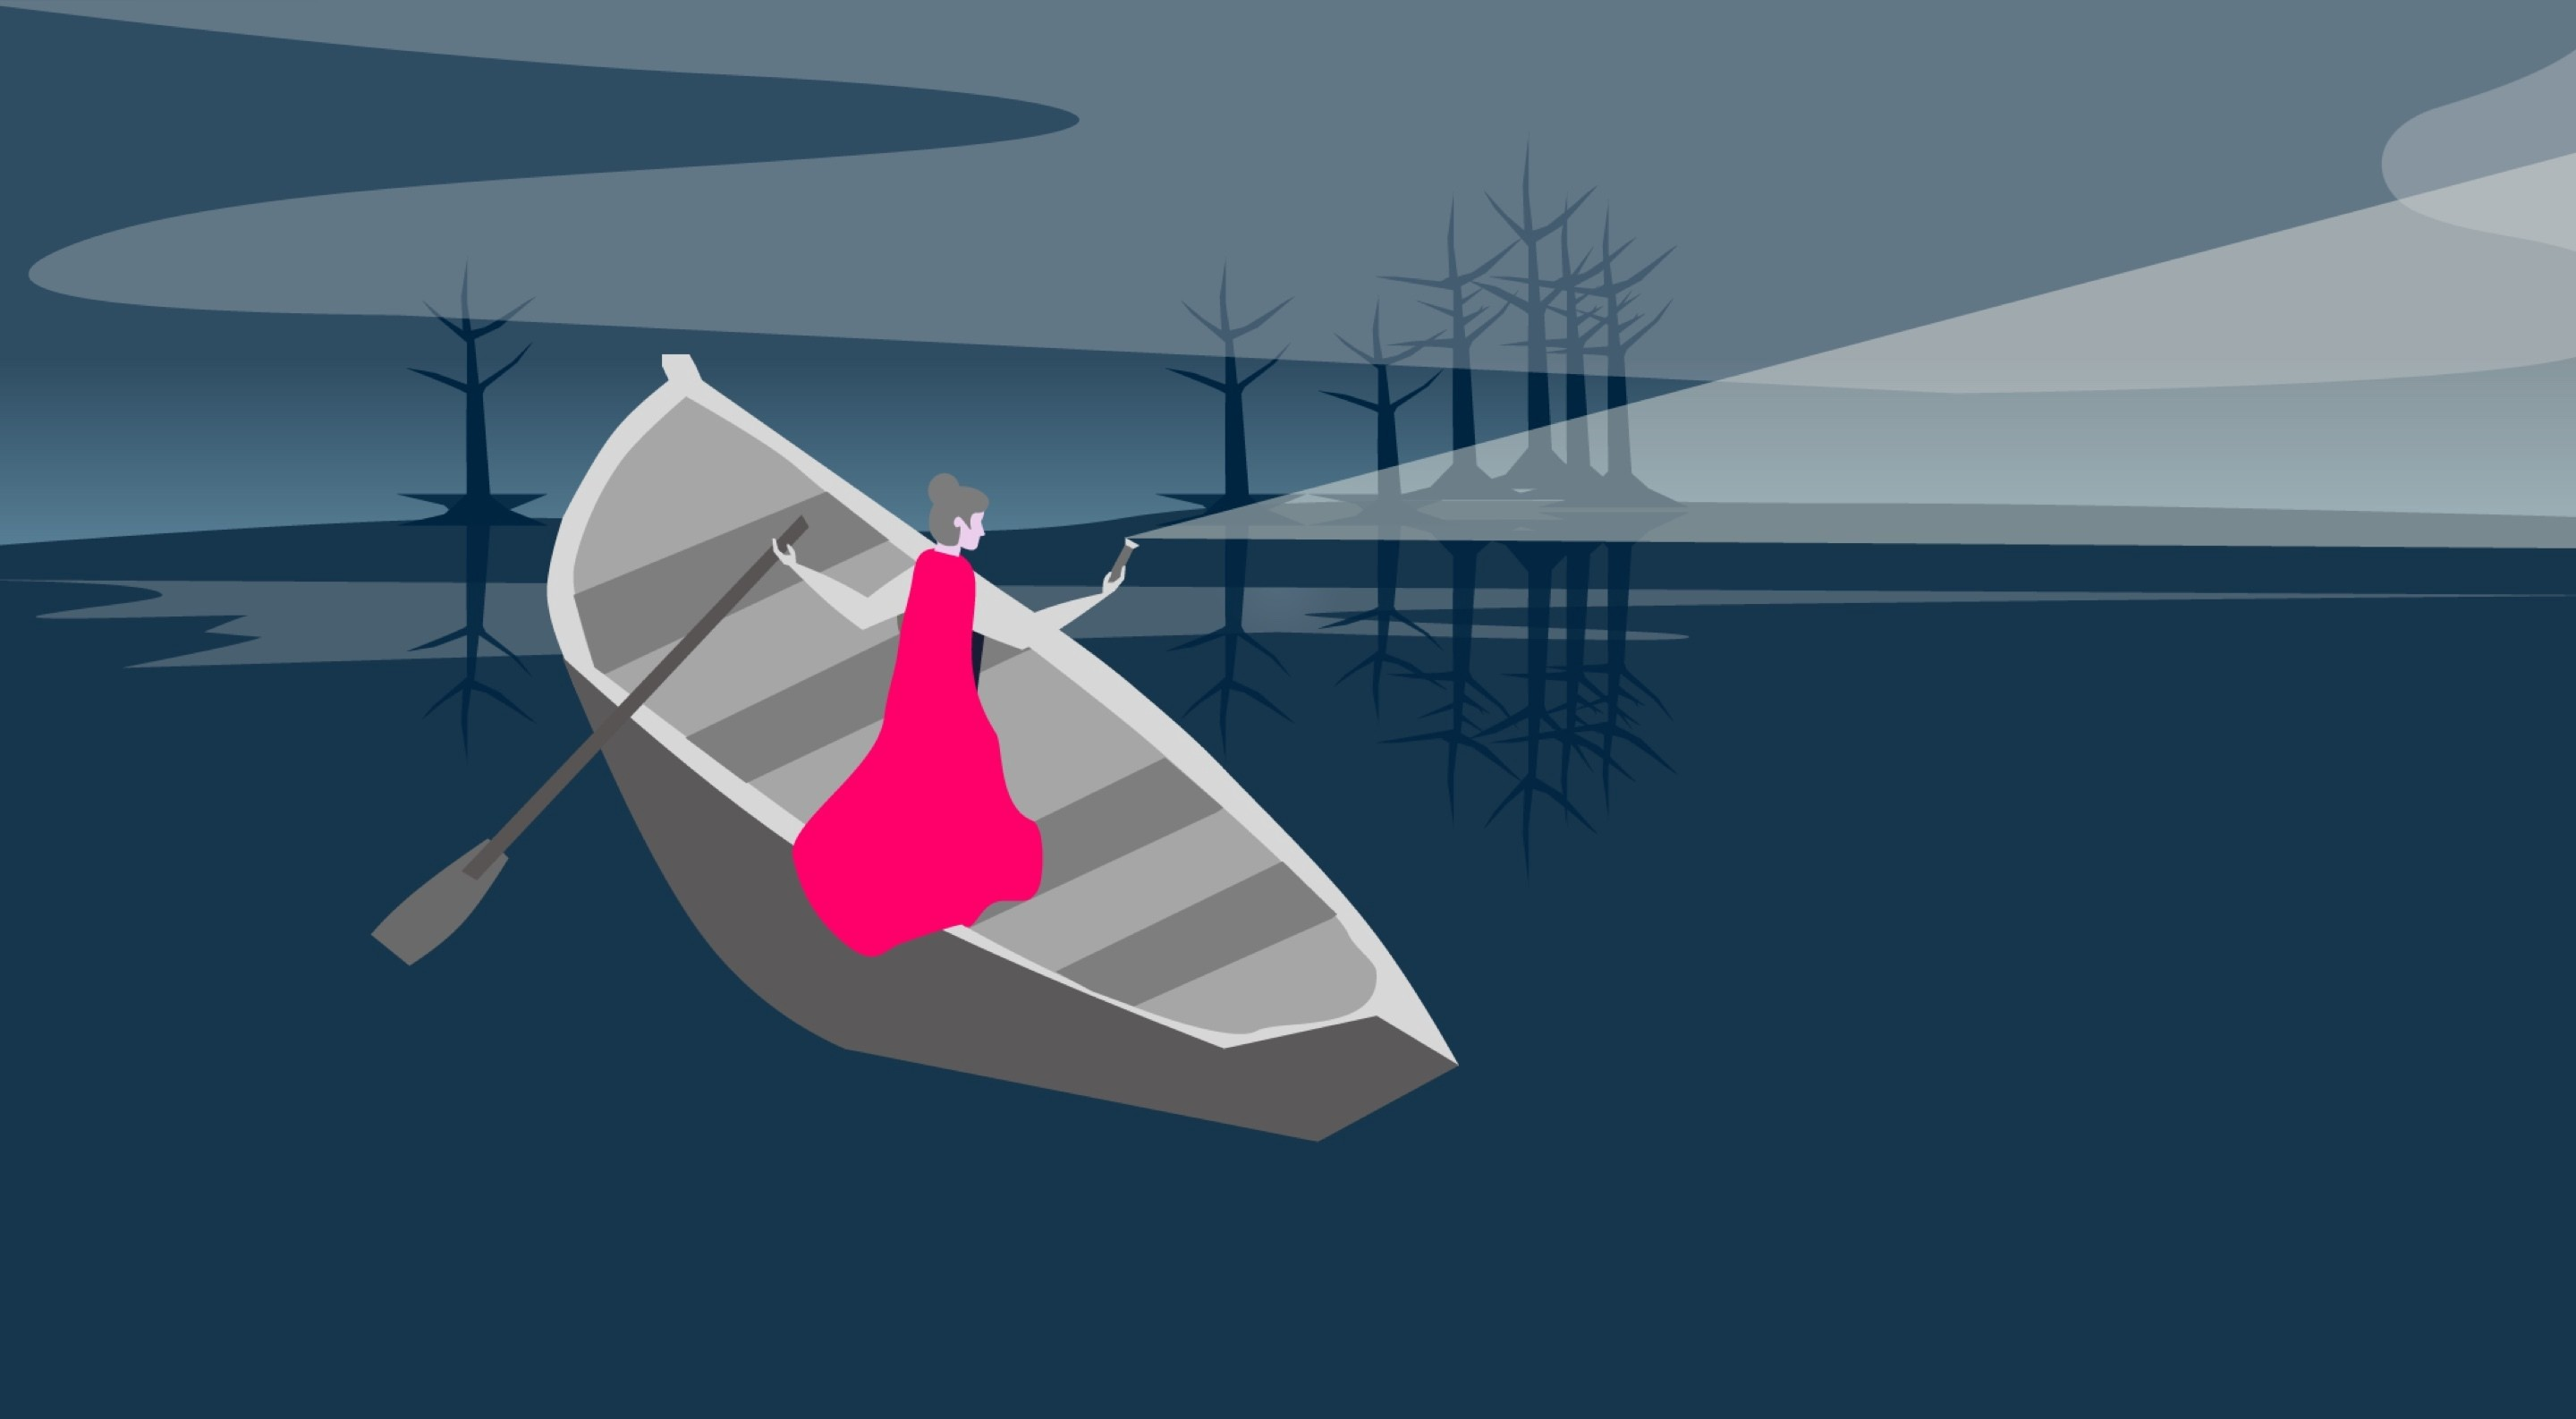 A lady in a pink cape stands on a boat in the middle of a dark lake. She shines a torch into the distance